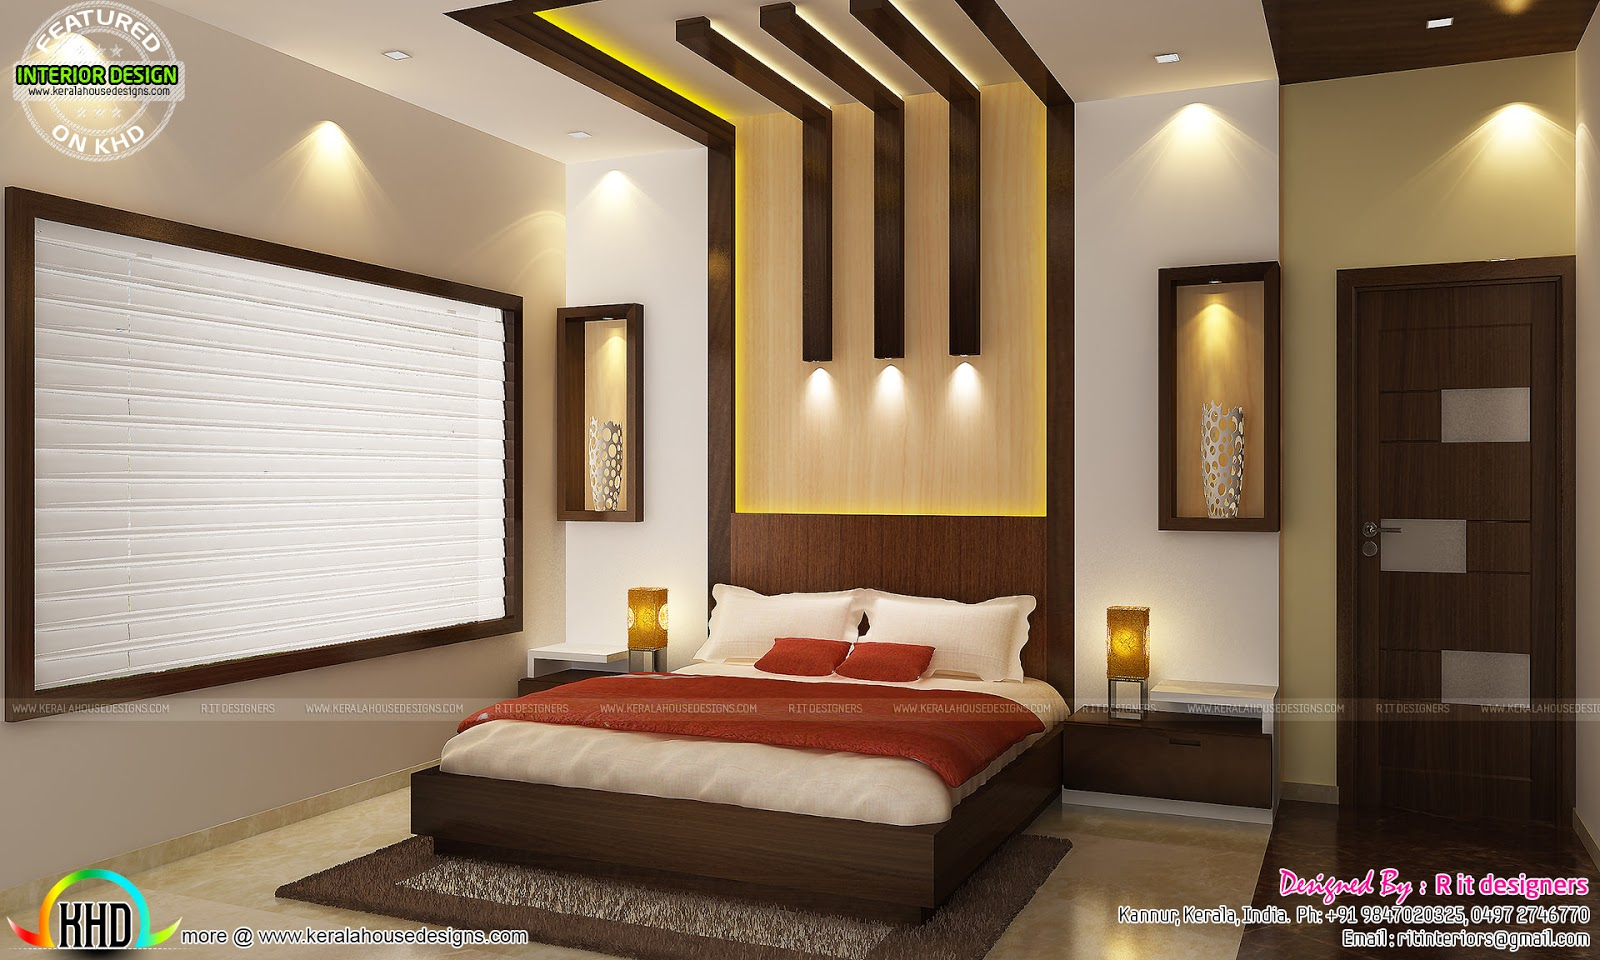 Kitchen living bedroom dining interior decor kerala for Kerala home interior design ideas